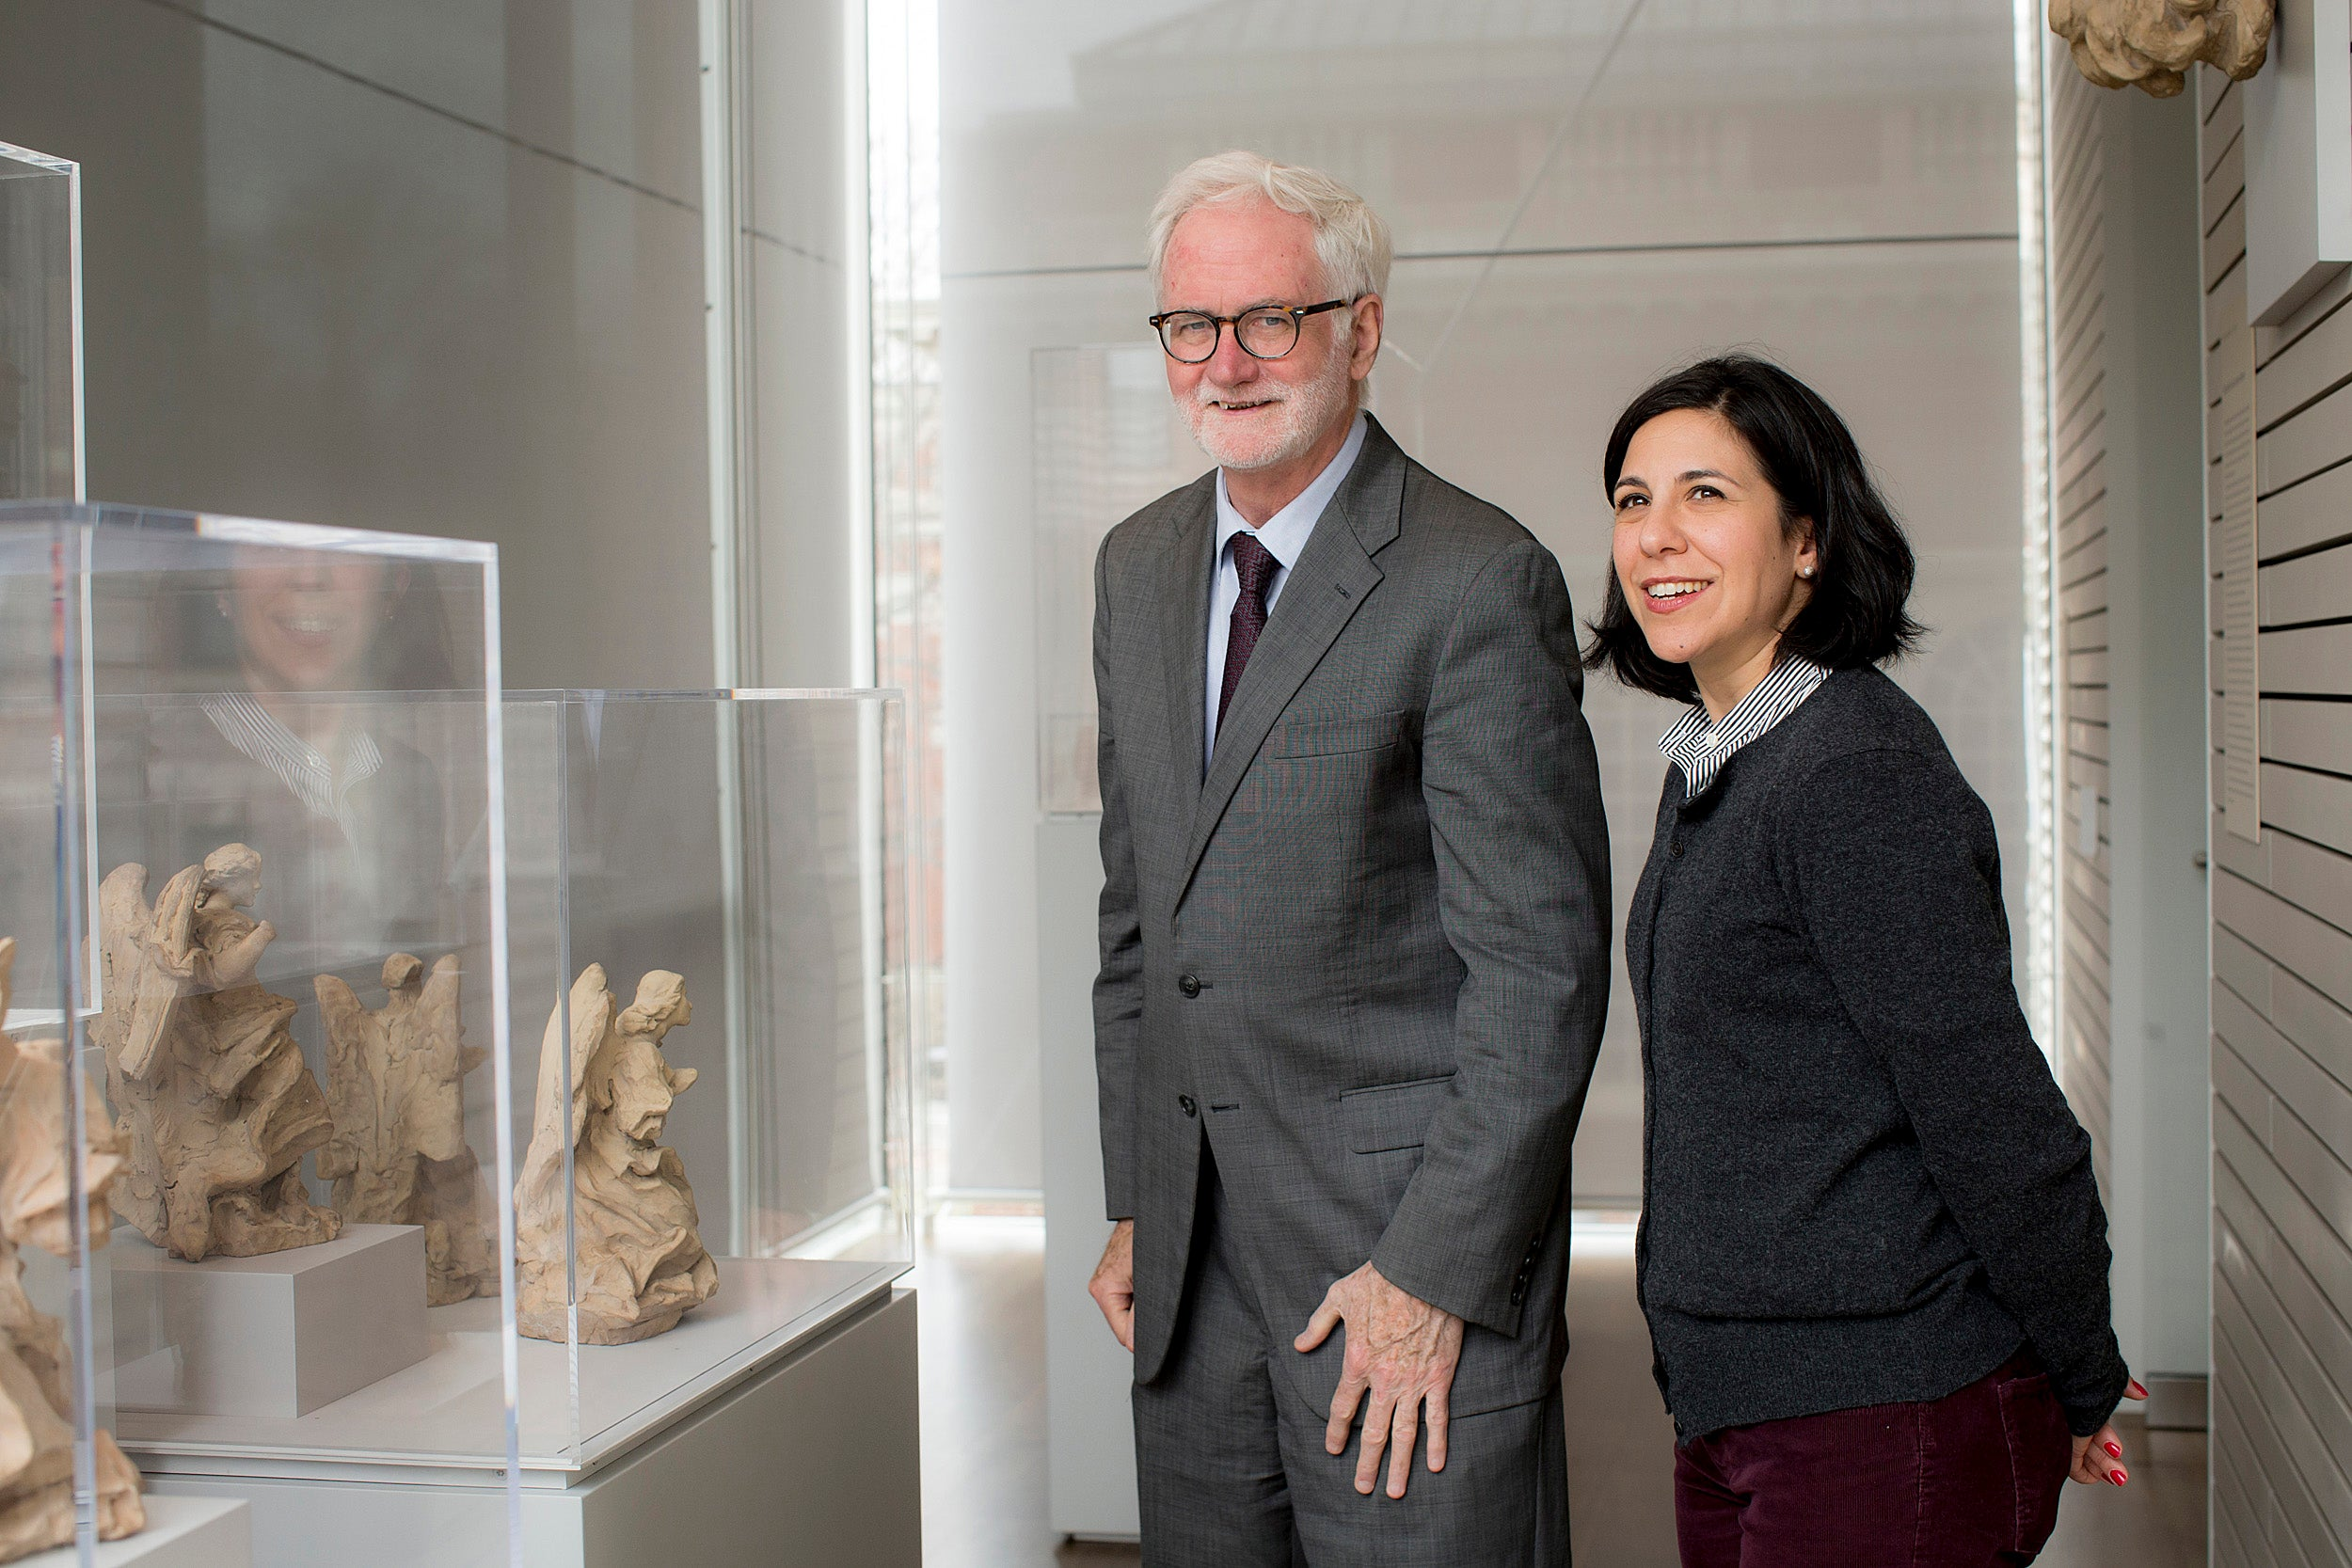 Joseph Connors, professor of history of art and architecture, took listeners on a virtual tour of two of Rome's most iconic spaces, the Piazza Navona and the Piazza San Pietro. Danielle Carrabino, an associate research curator in European Art at the Harvard Art Museums, assisted Connors on the exhibit.